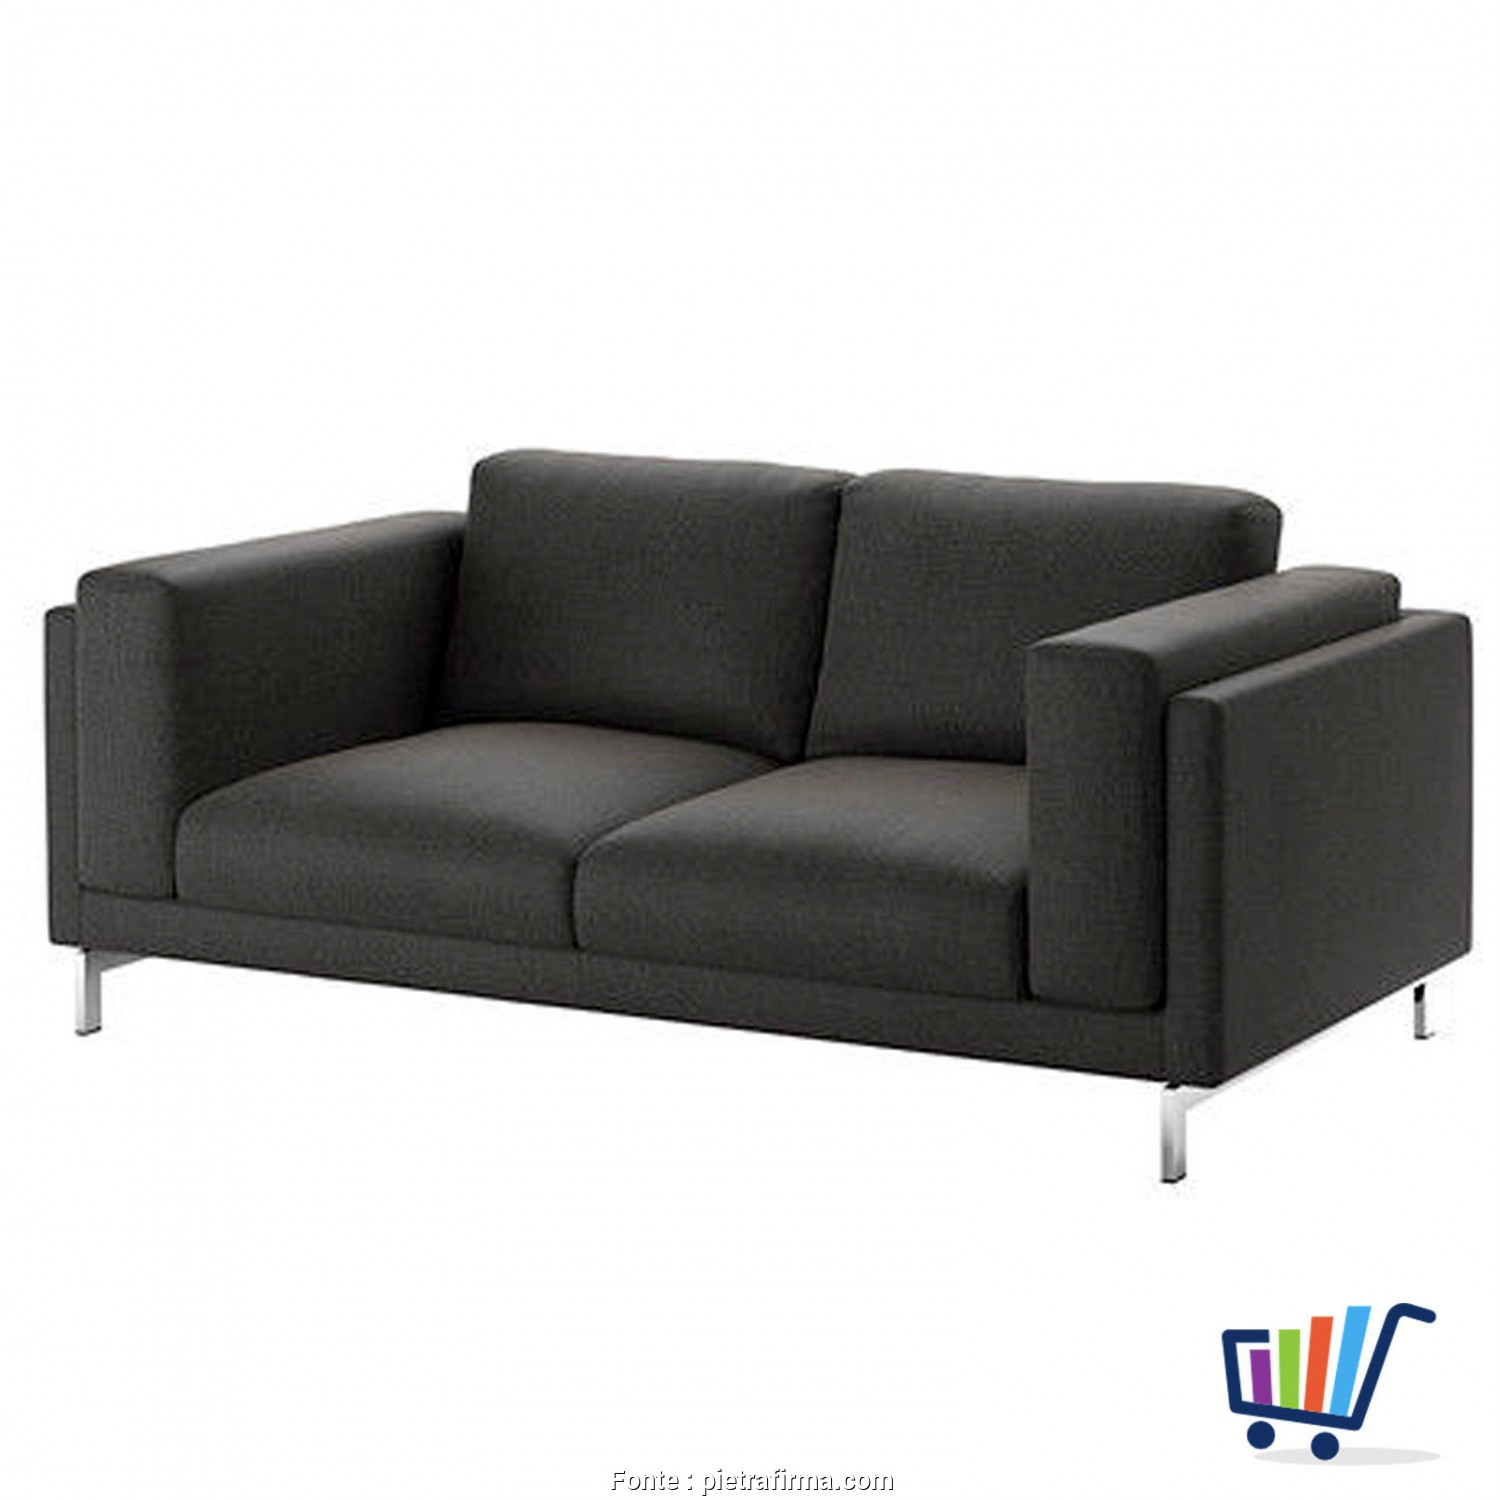 Backabro Ikea Erfahrungen, Originale Ikea Sofa Blau. Askeby, Bettsofa Blau Ikea. Stocksund, Sofa